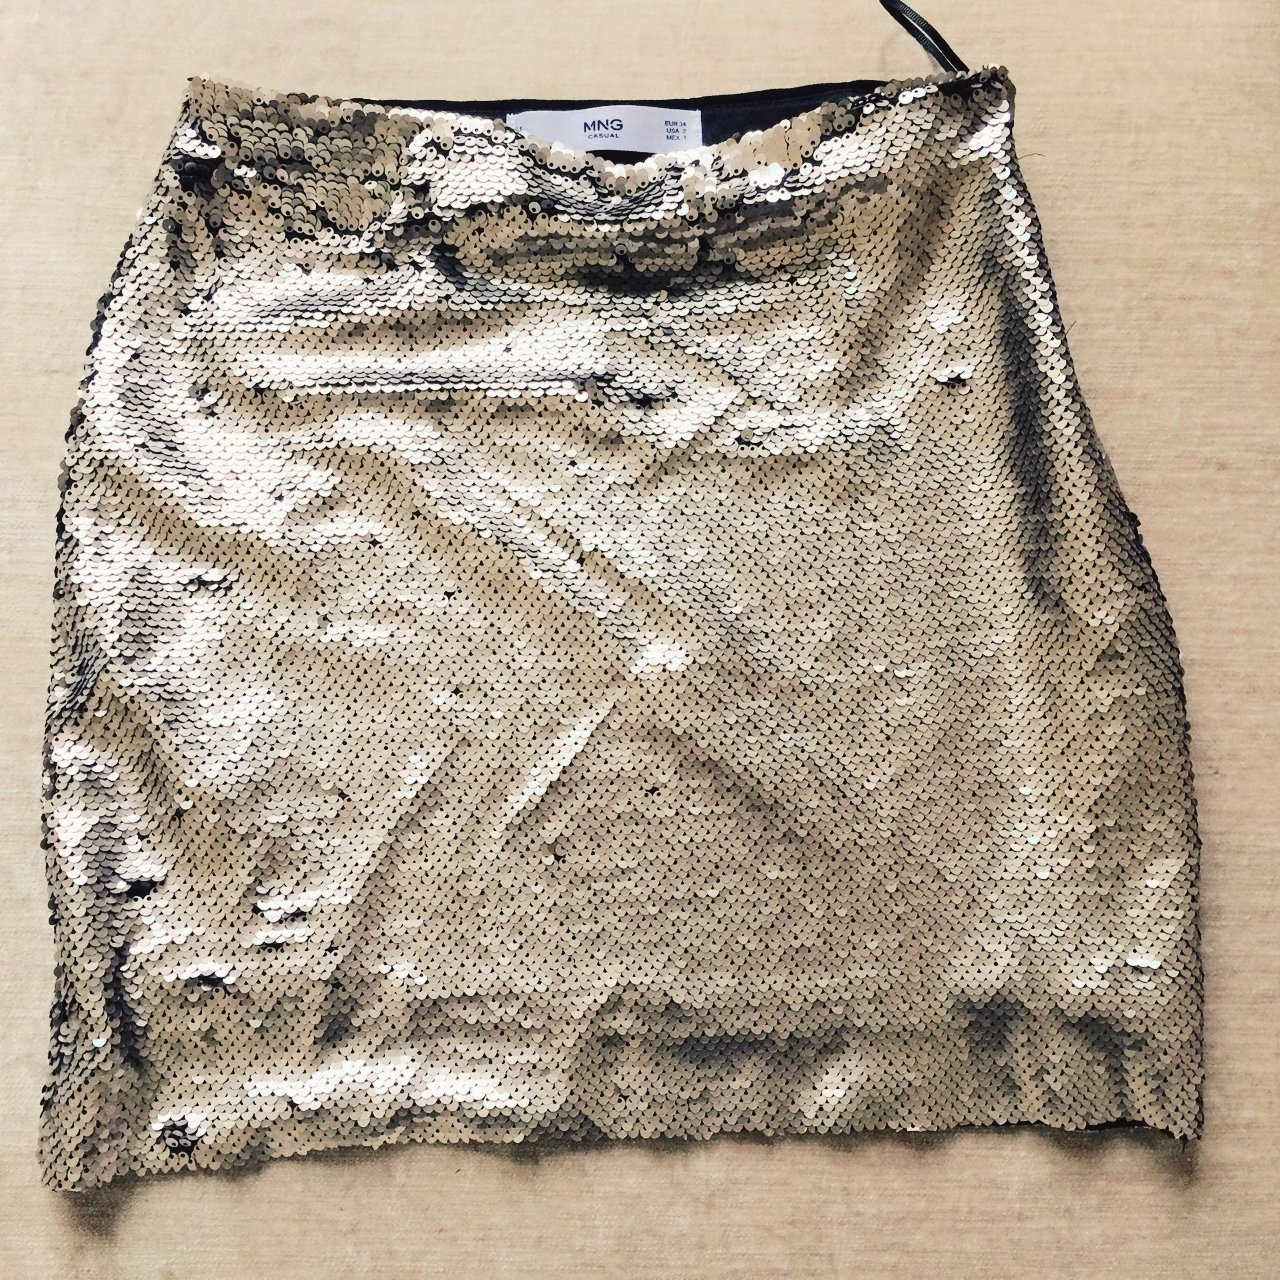 b0152d65e2 Sequin gold mini skirt from Mango. Never been worn. Perfect - Depop